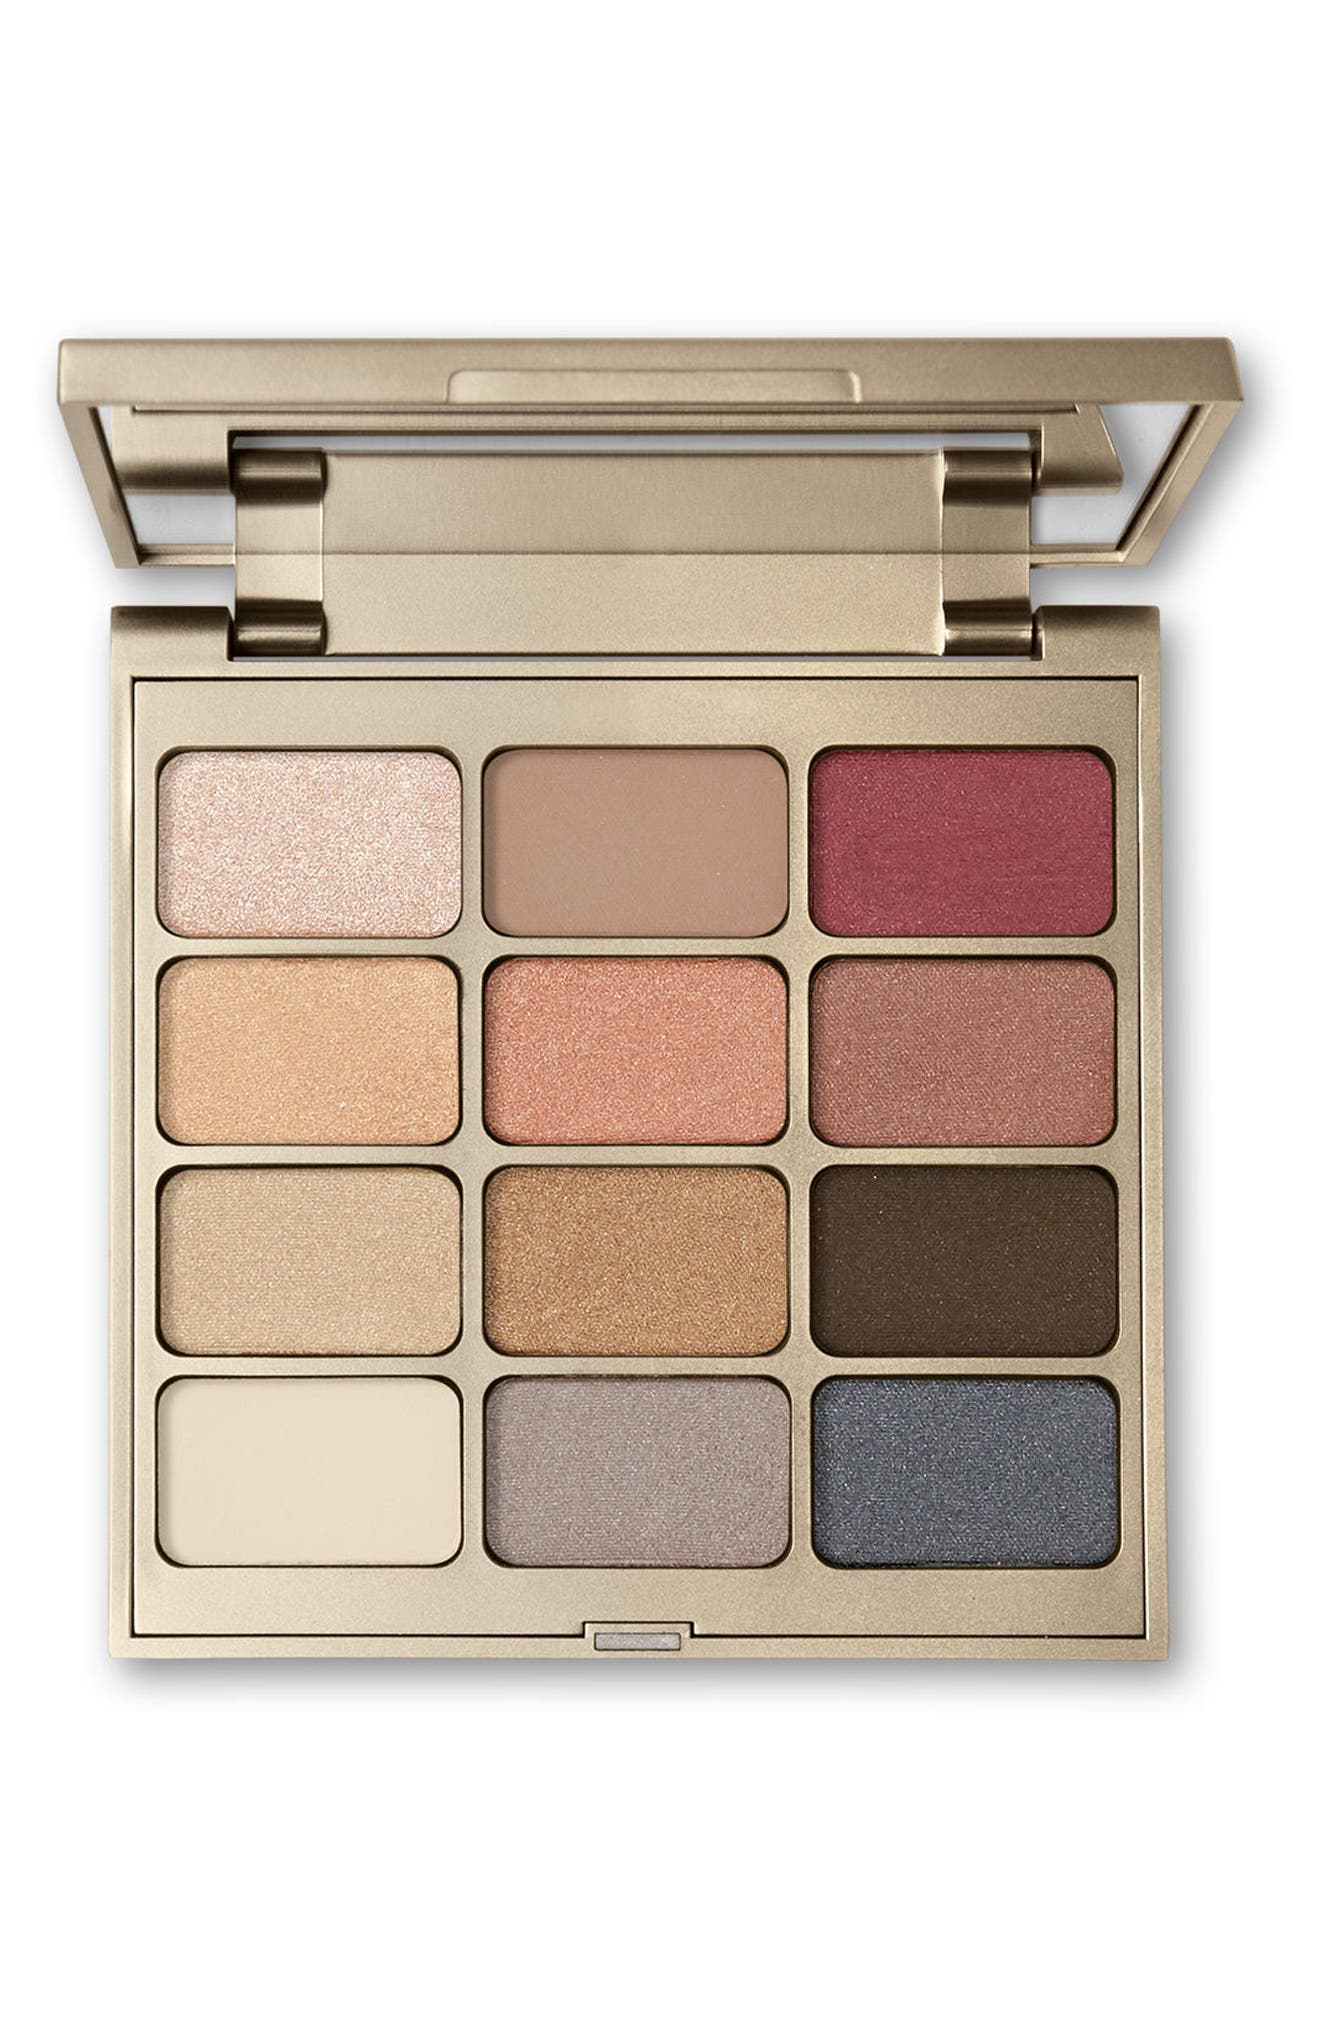 Stila Eyes Are the Window Spirit Eyeshadow Palette